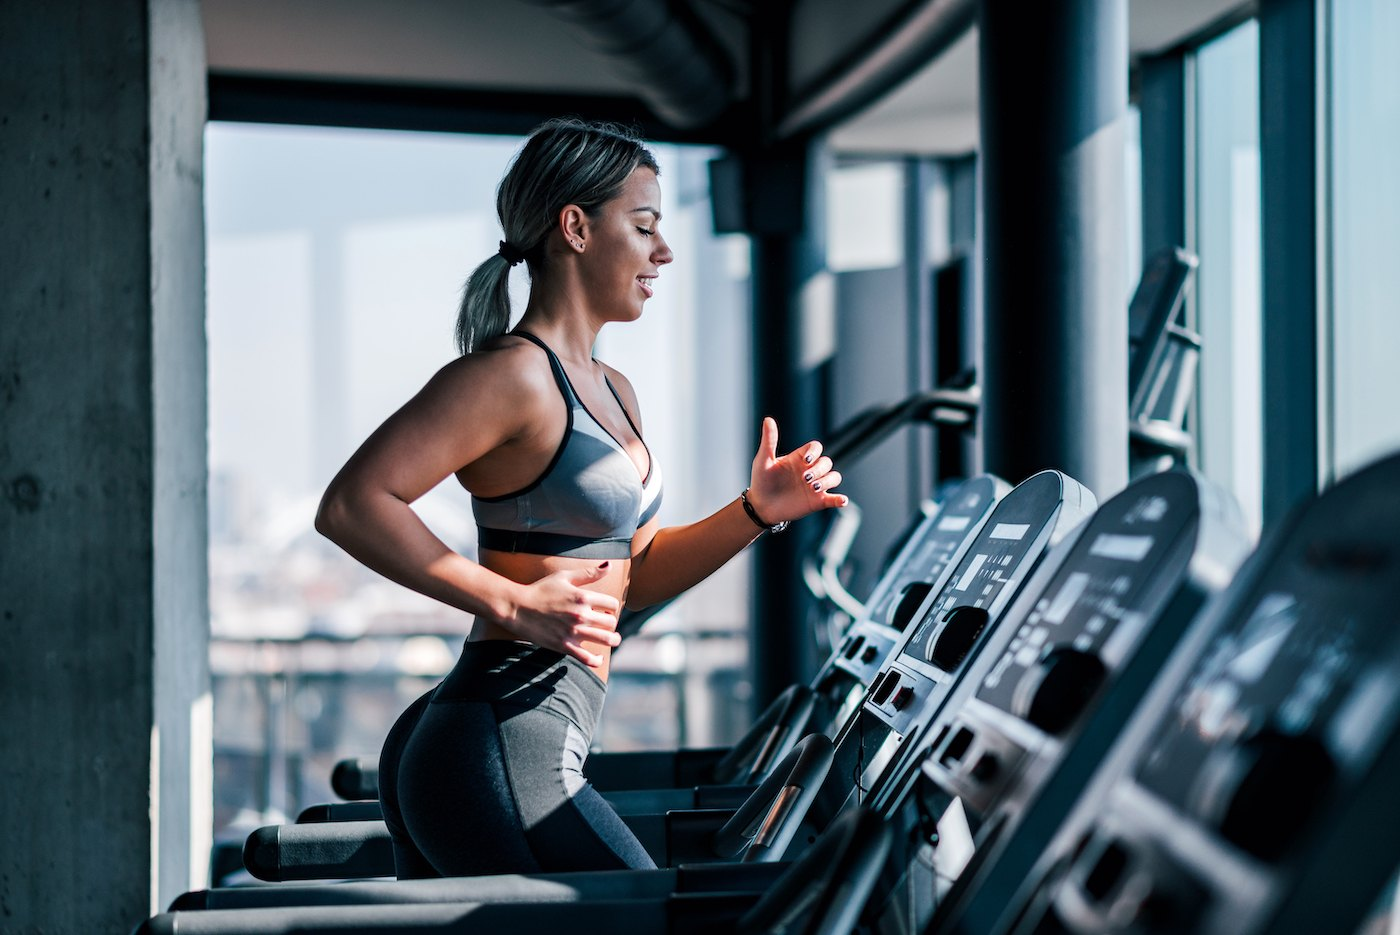 62% of our readers hate going to the gym at night—here's how to motivate for a post-work workout sesh